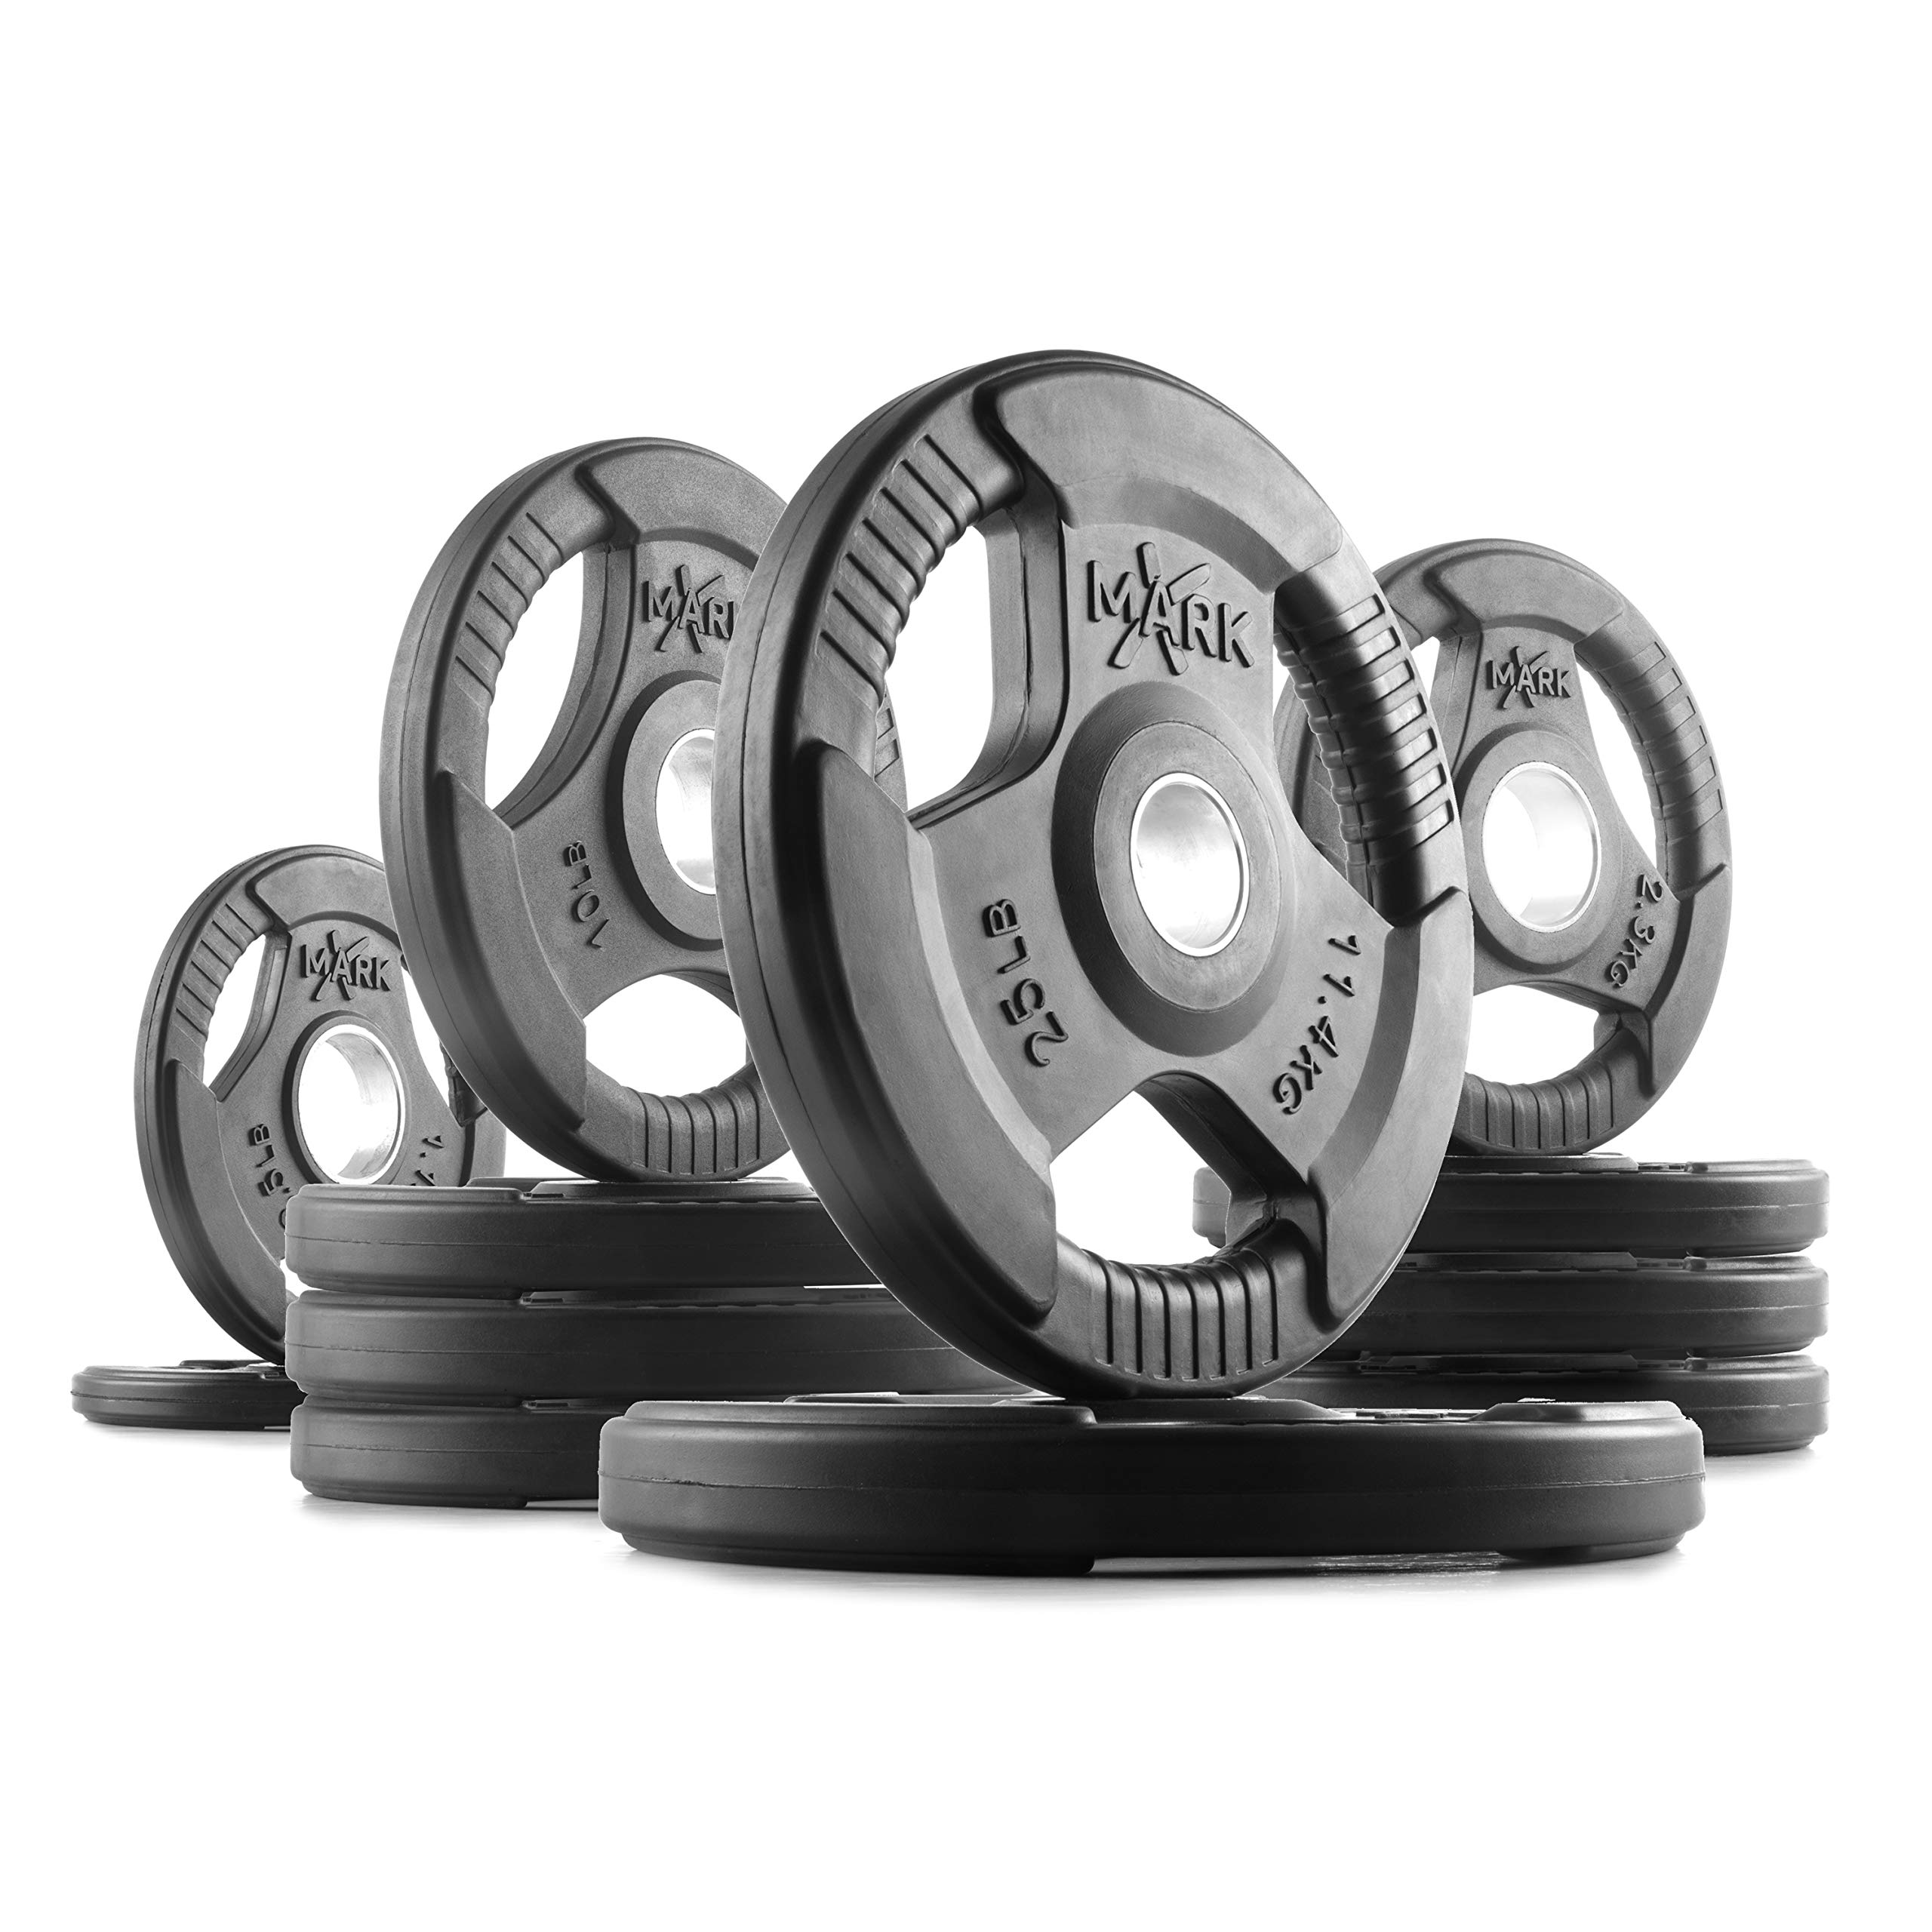 XMark TRI-Grip 115 lb Set Olympic Weights, Premium Rubber Coated Olympic Plates, One-Year Warranty by XMark Fitness (Image #1)